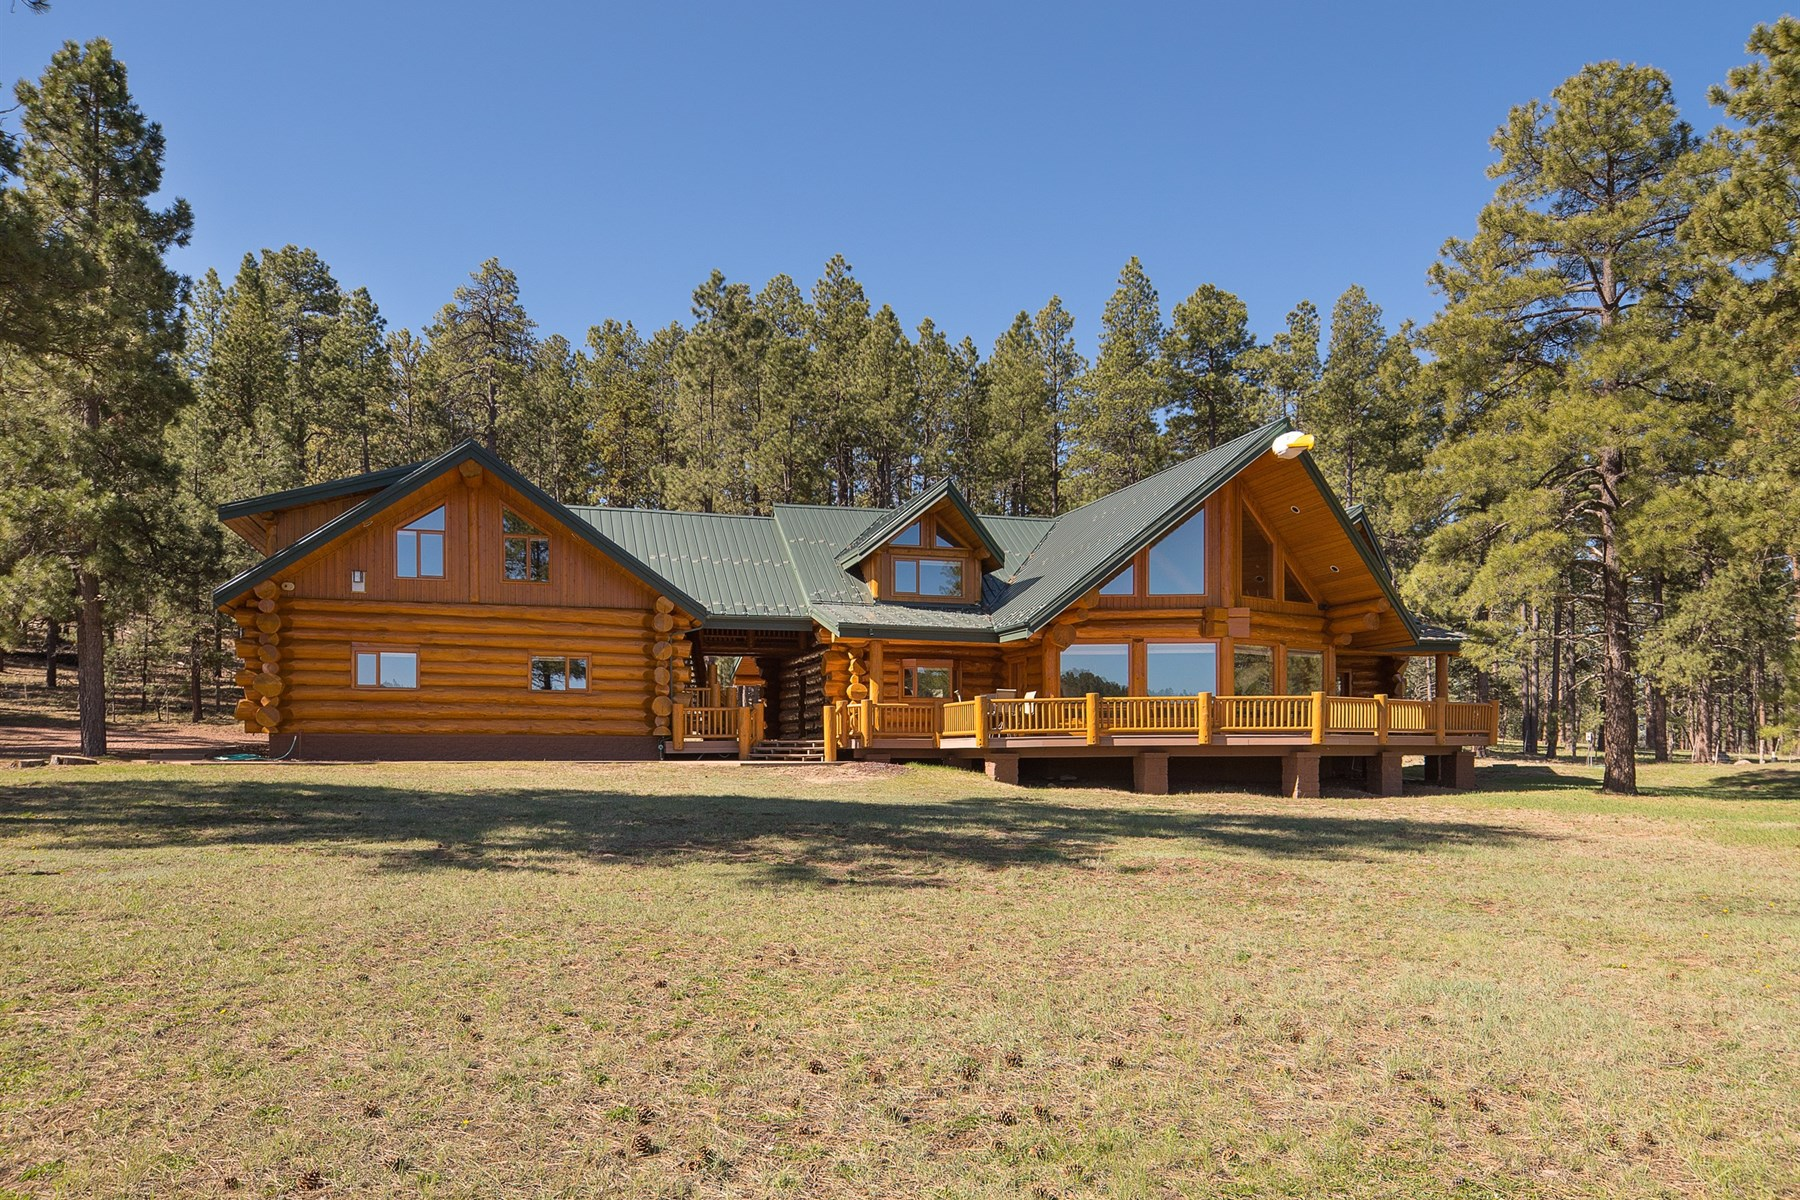 Maison unifamiliale pour l Vente à Phenomenal custom hand built Pioneer Log Home. 39112 Lake Mary RD Happy Jack, Arizona 86024 États-Unis